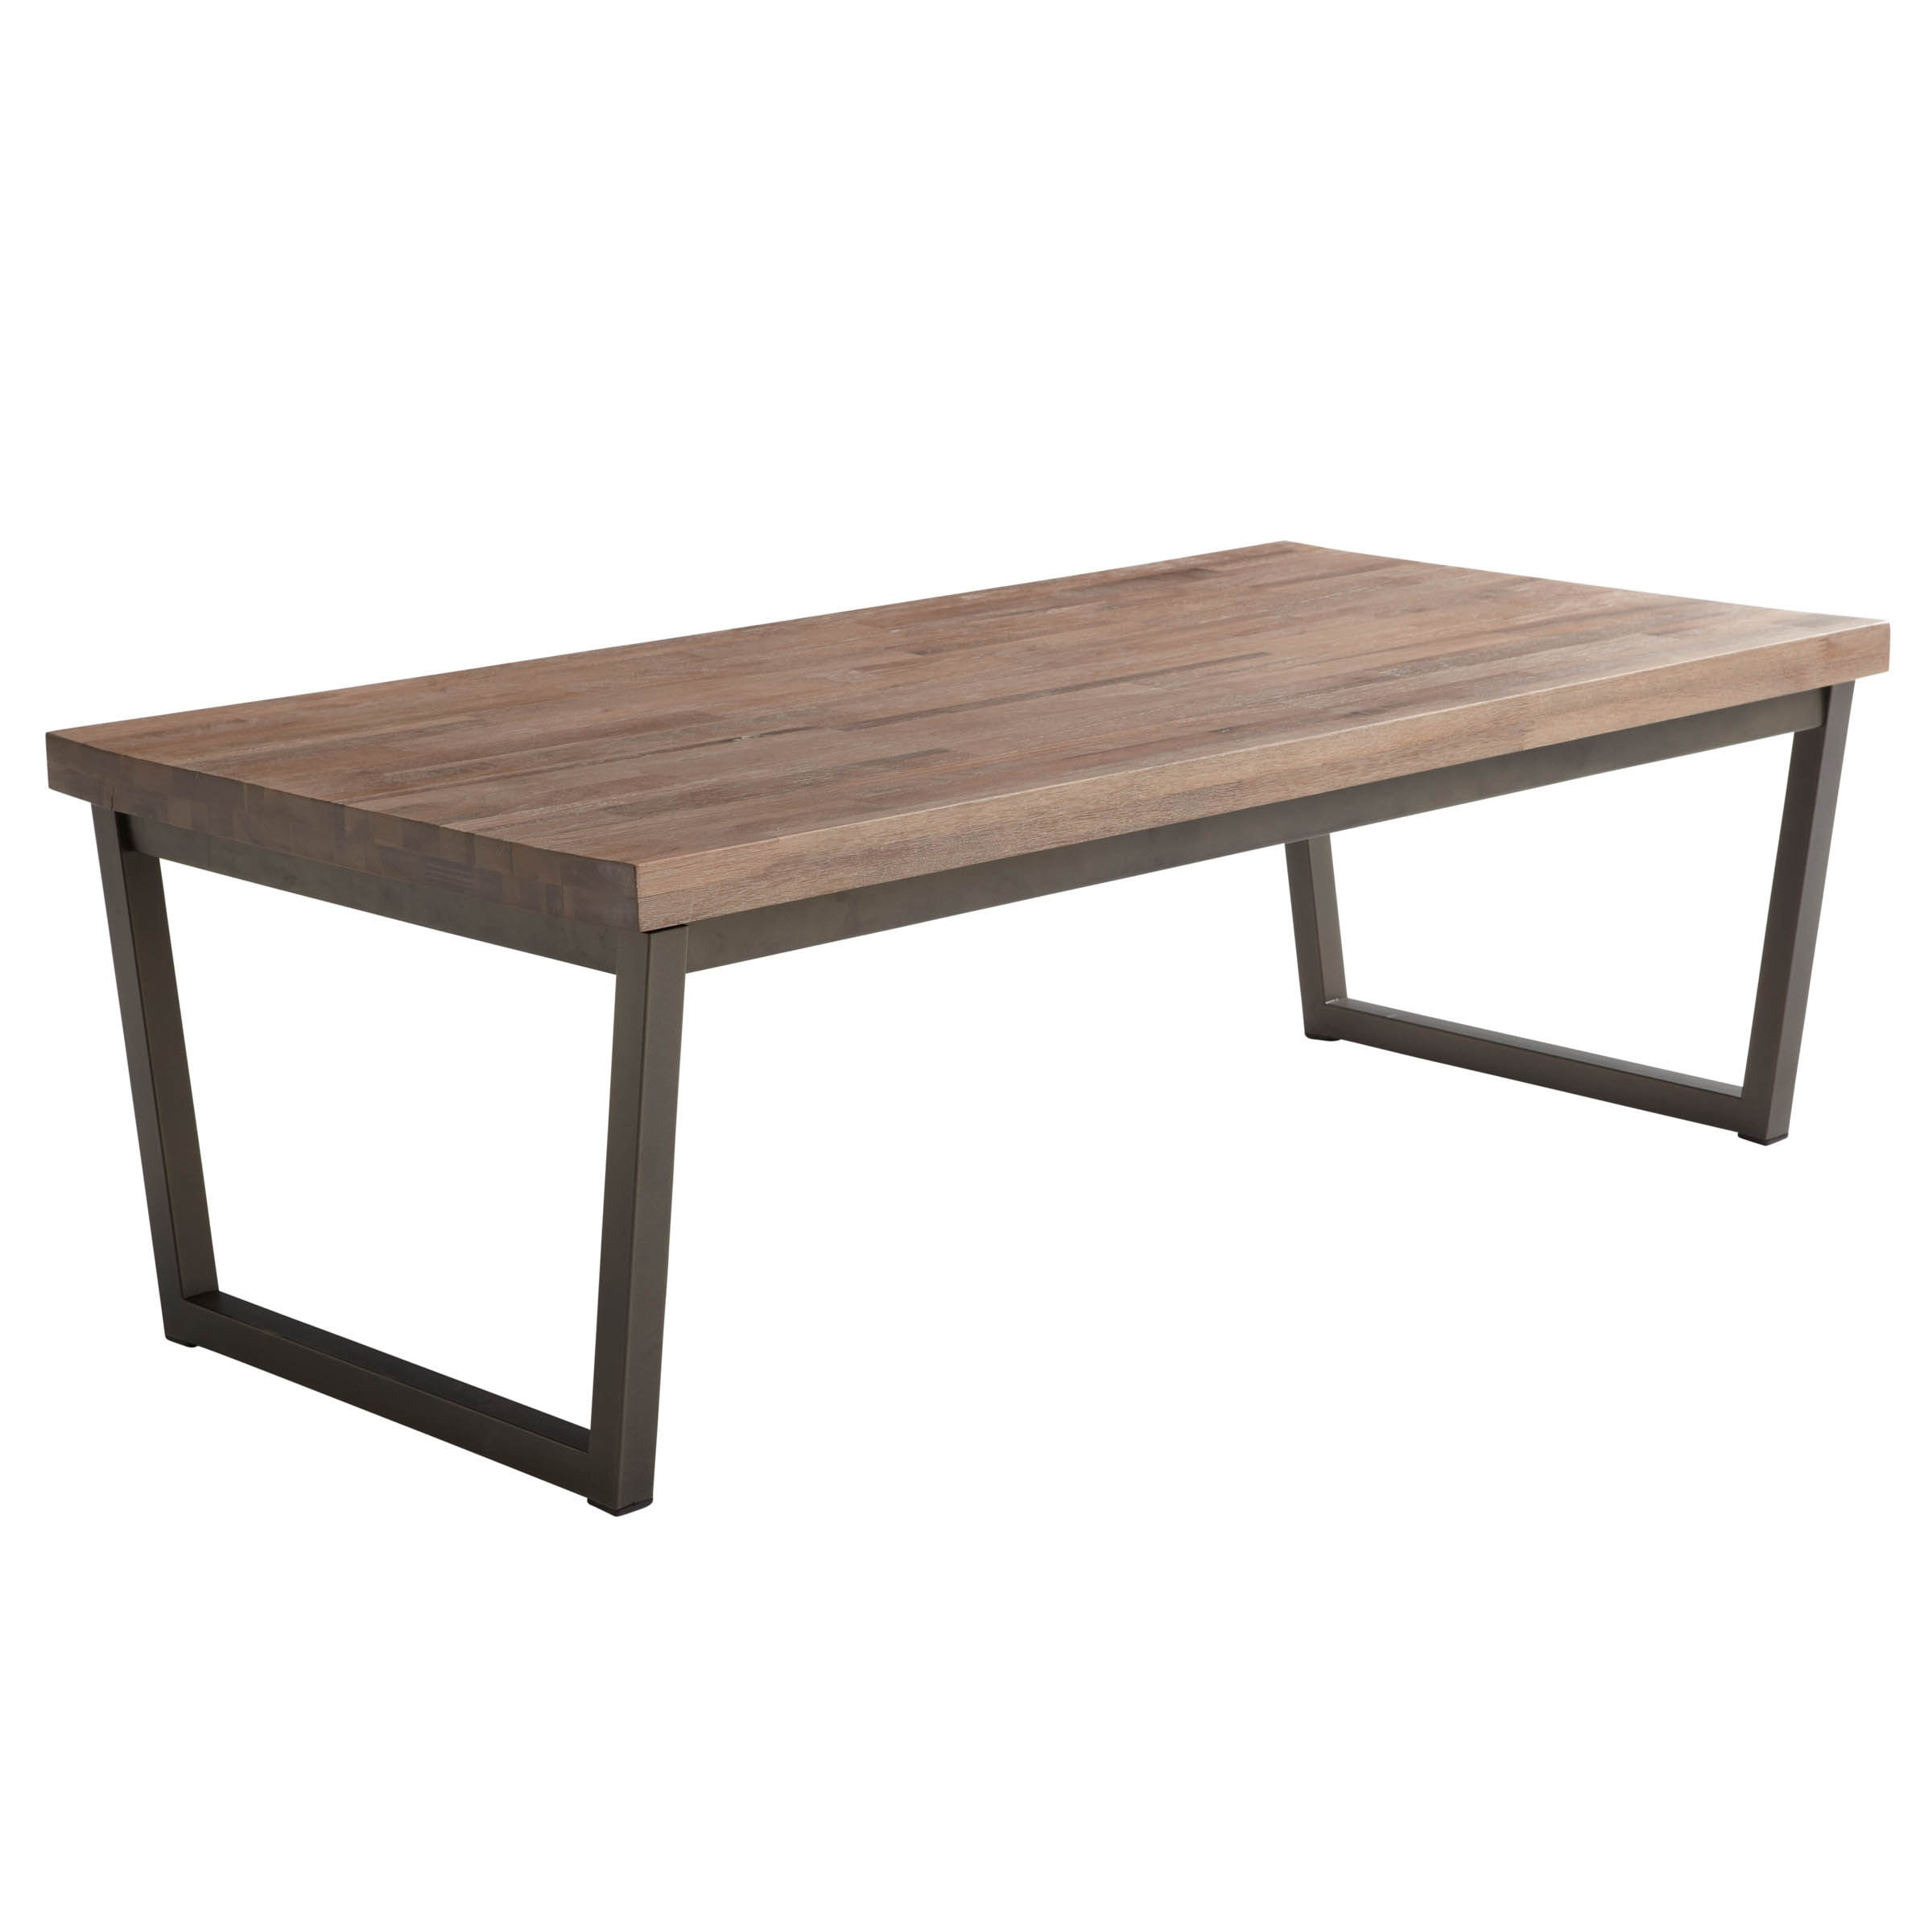 Shop Sunpan Porto Distressed Coffee Table   On Sale   Free Shipping Today    Overstock   9219475